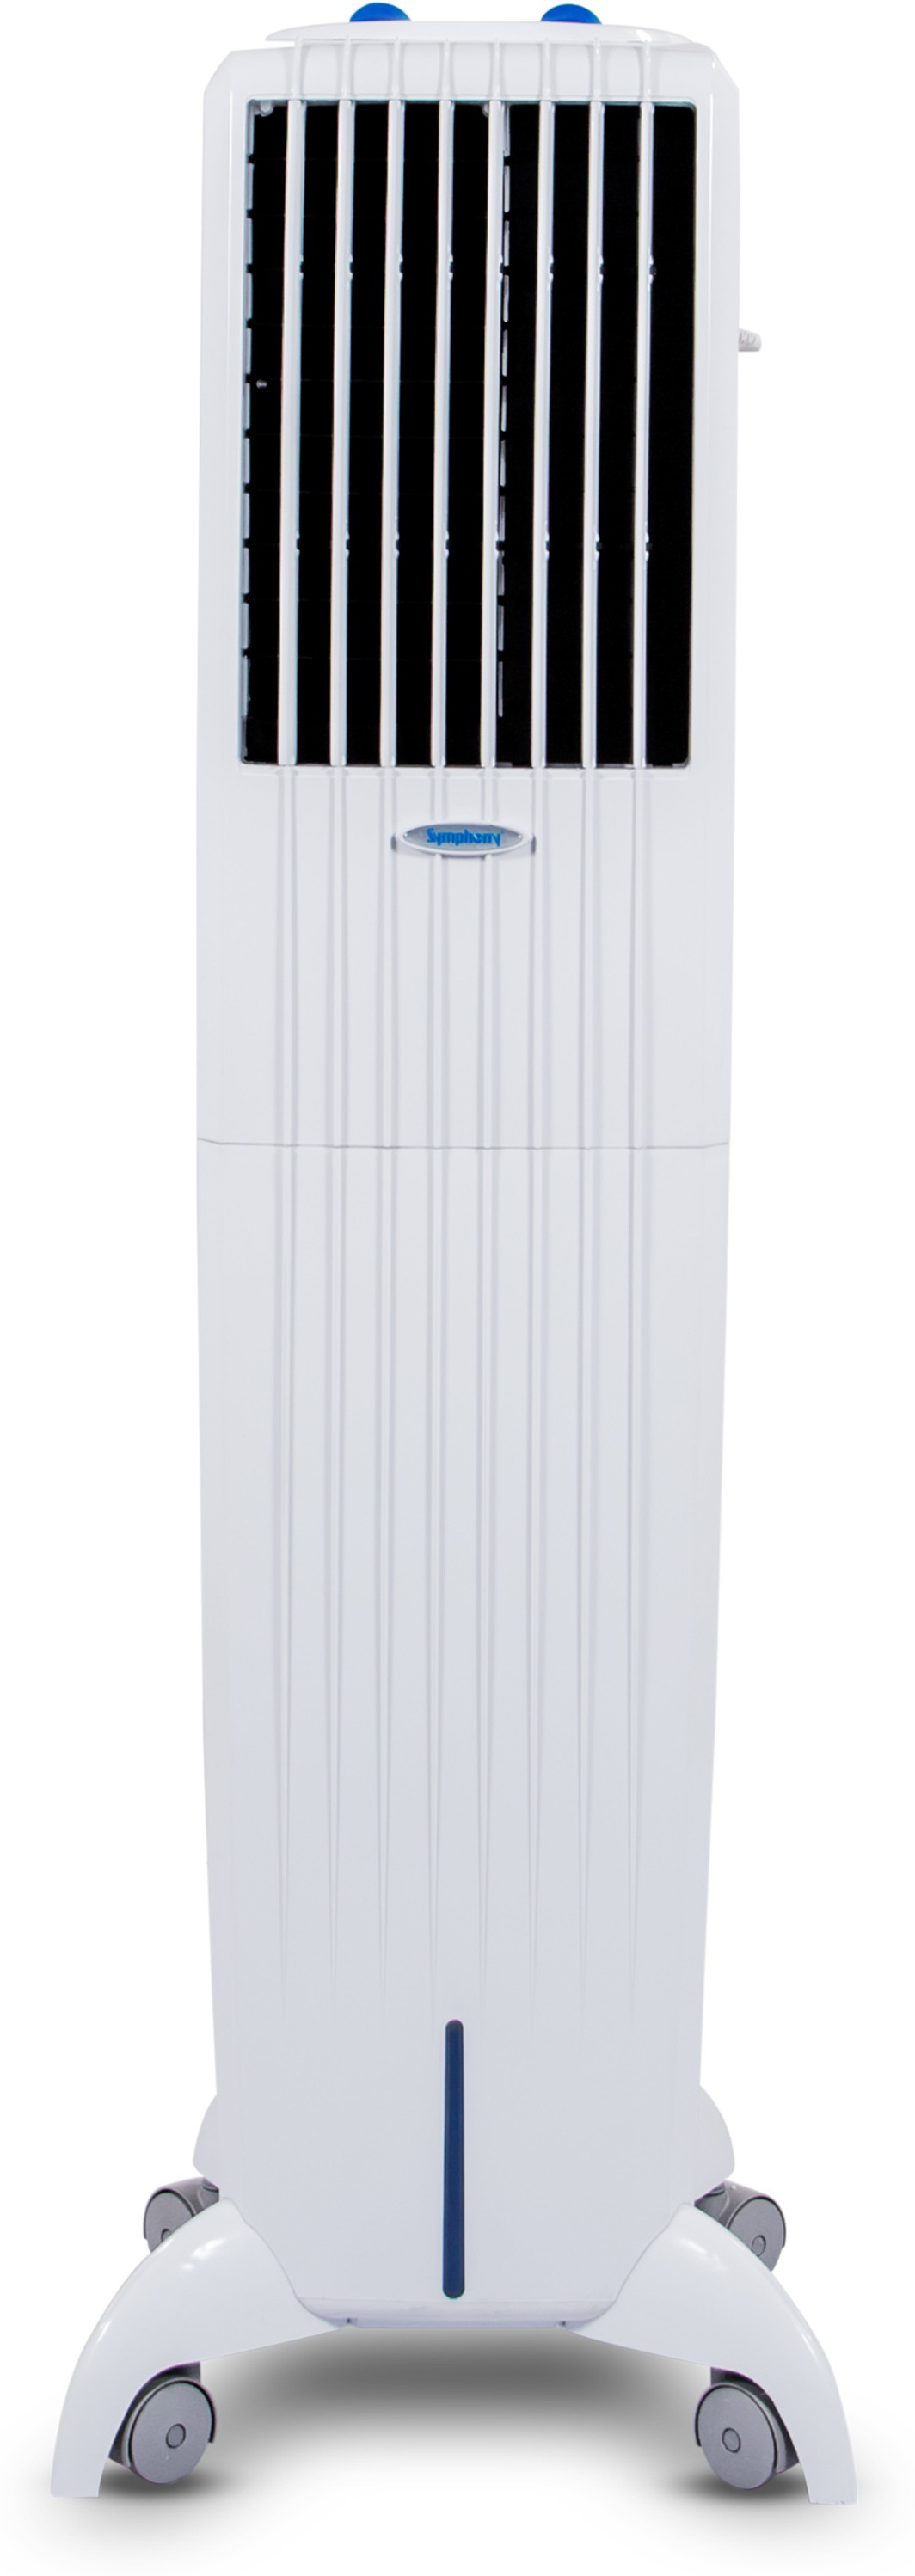 Symphony Diet 50T Tower Air Cooler Image